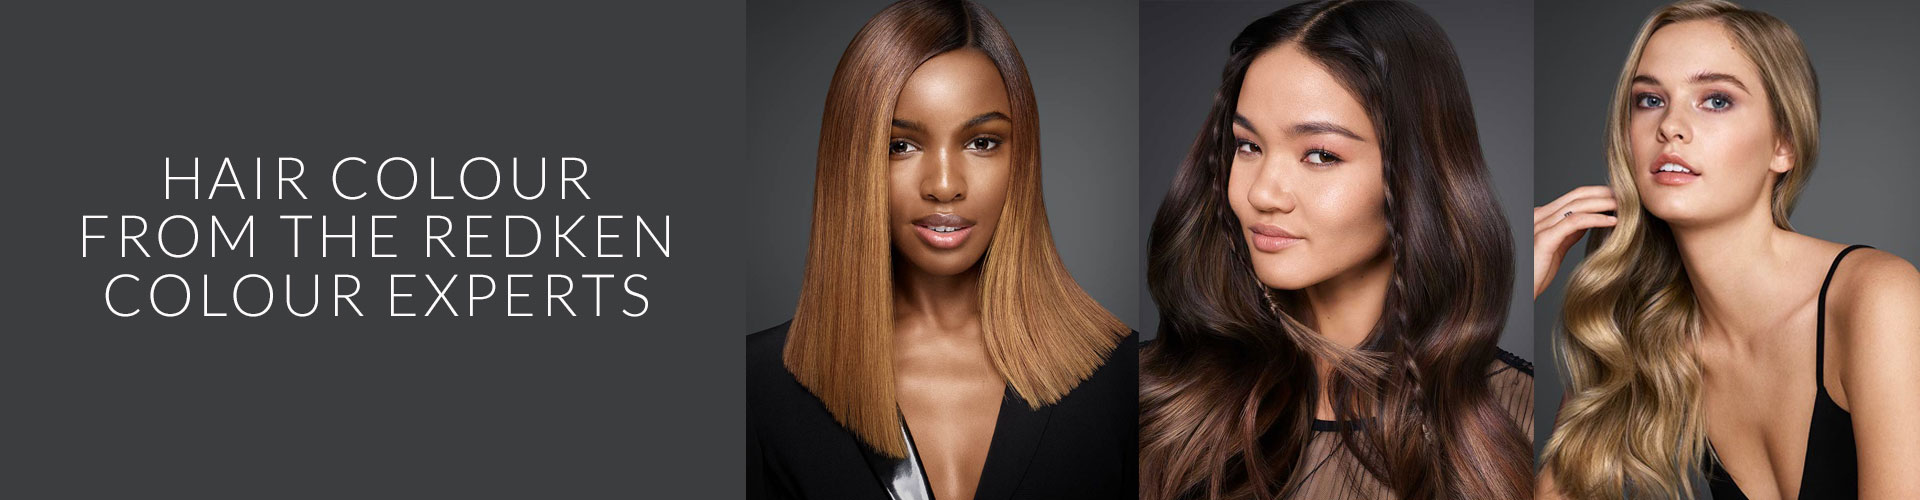 hair colour from the redken colour experts